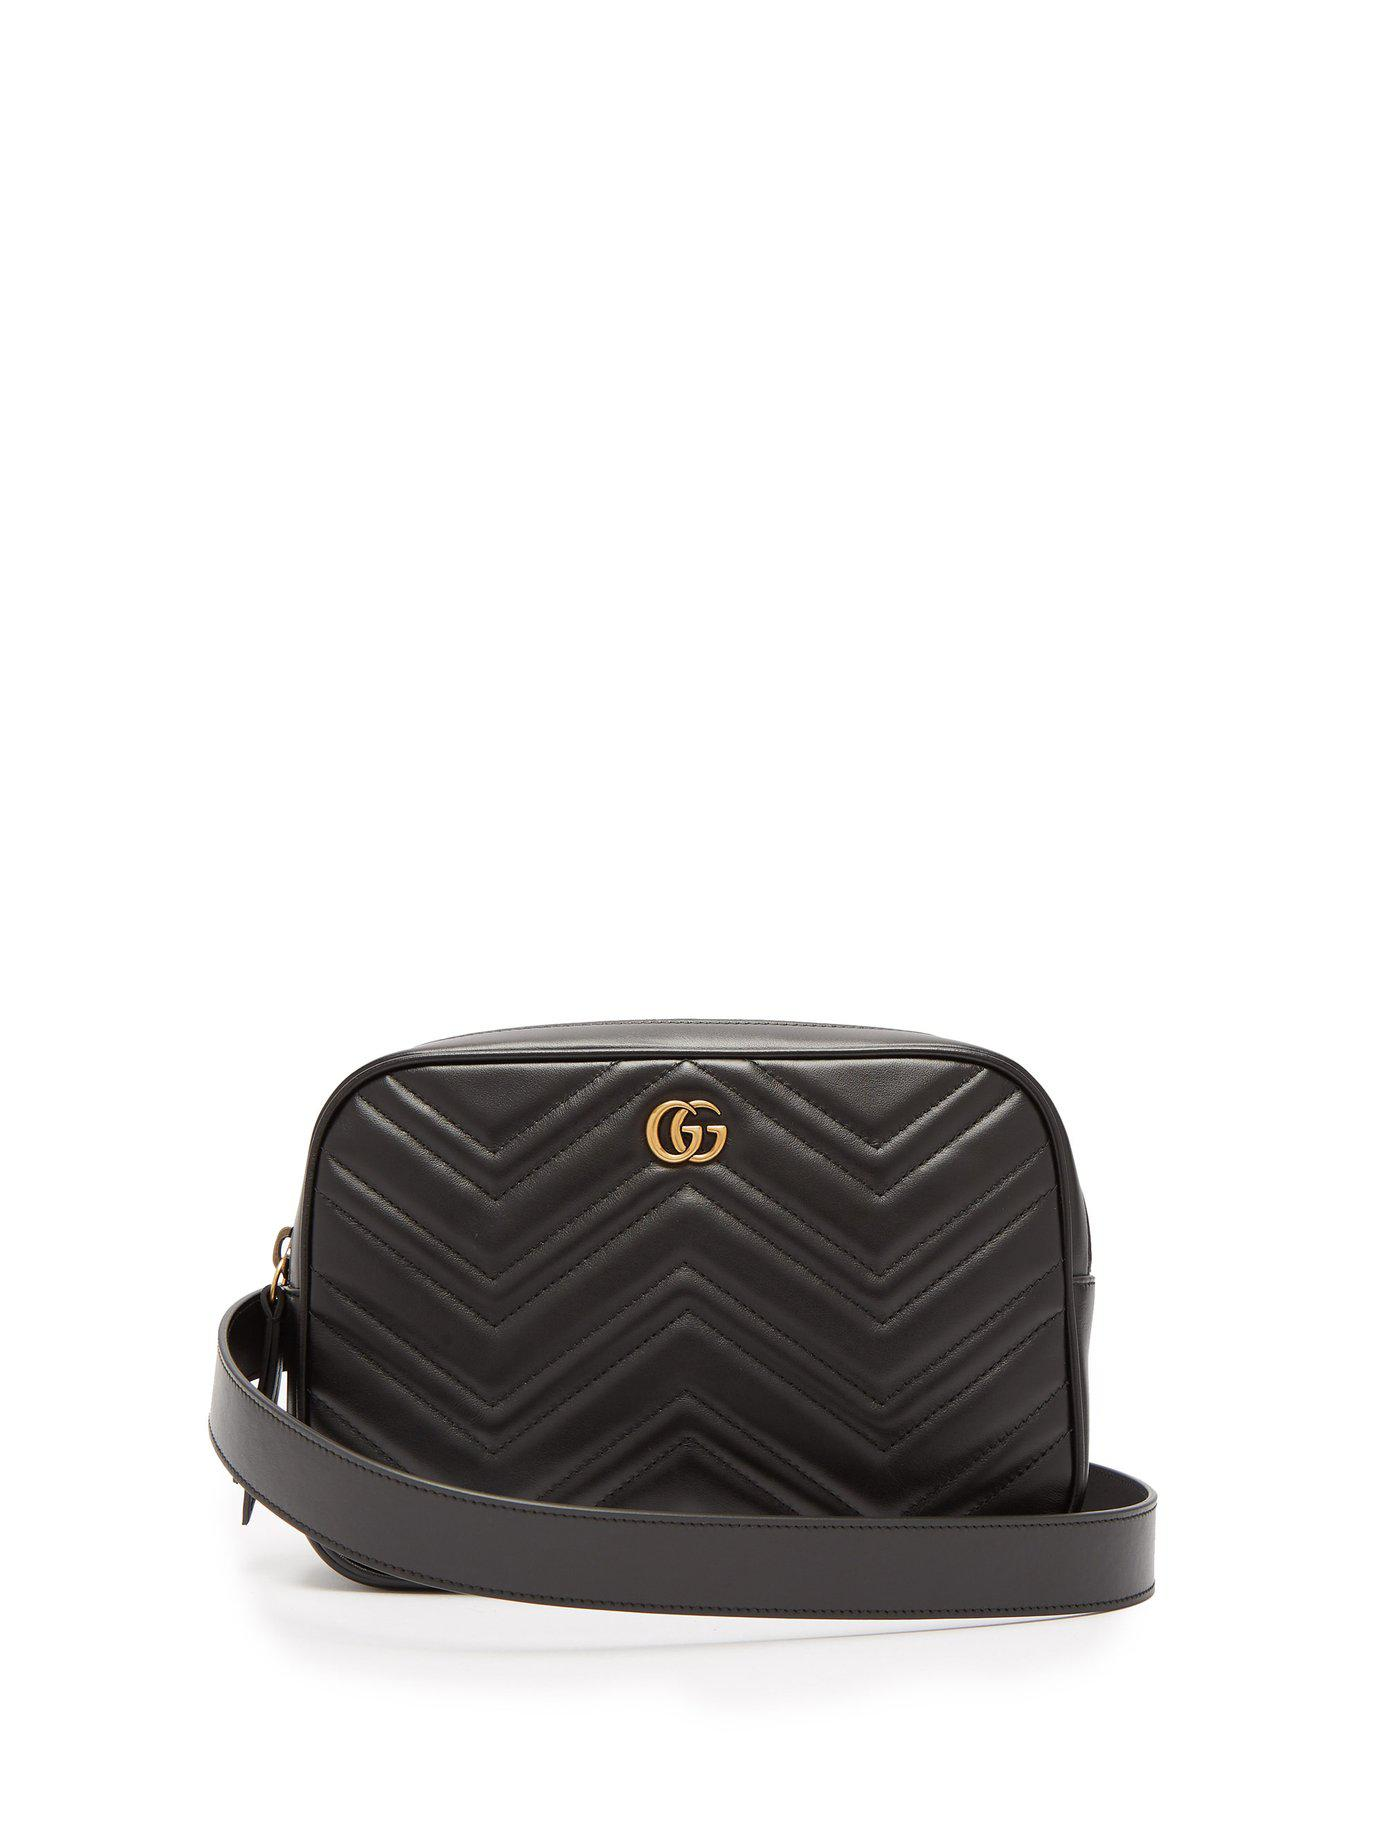 648df573fc6 Lyst - Gucci Gg Marmont Quilted Leather Belt Bag in Black for Men